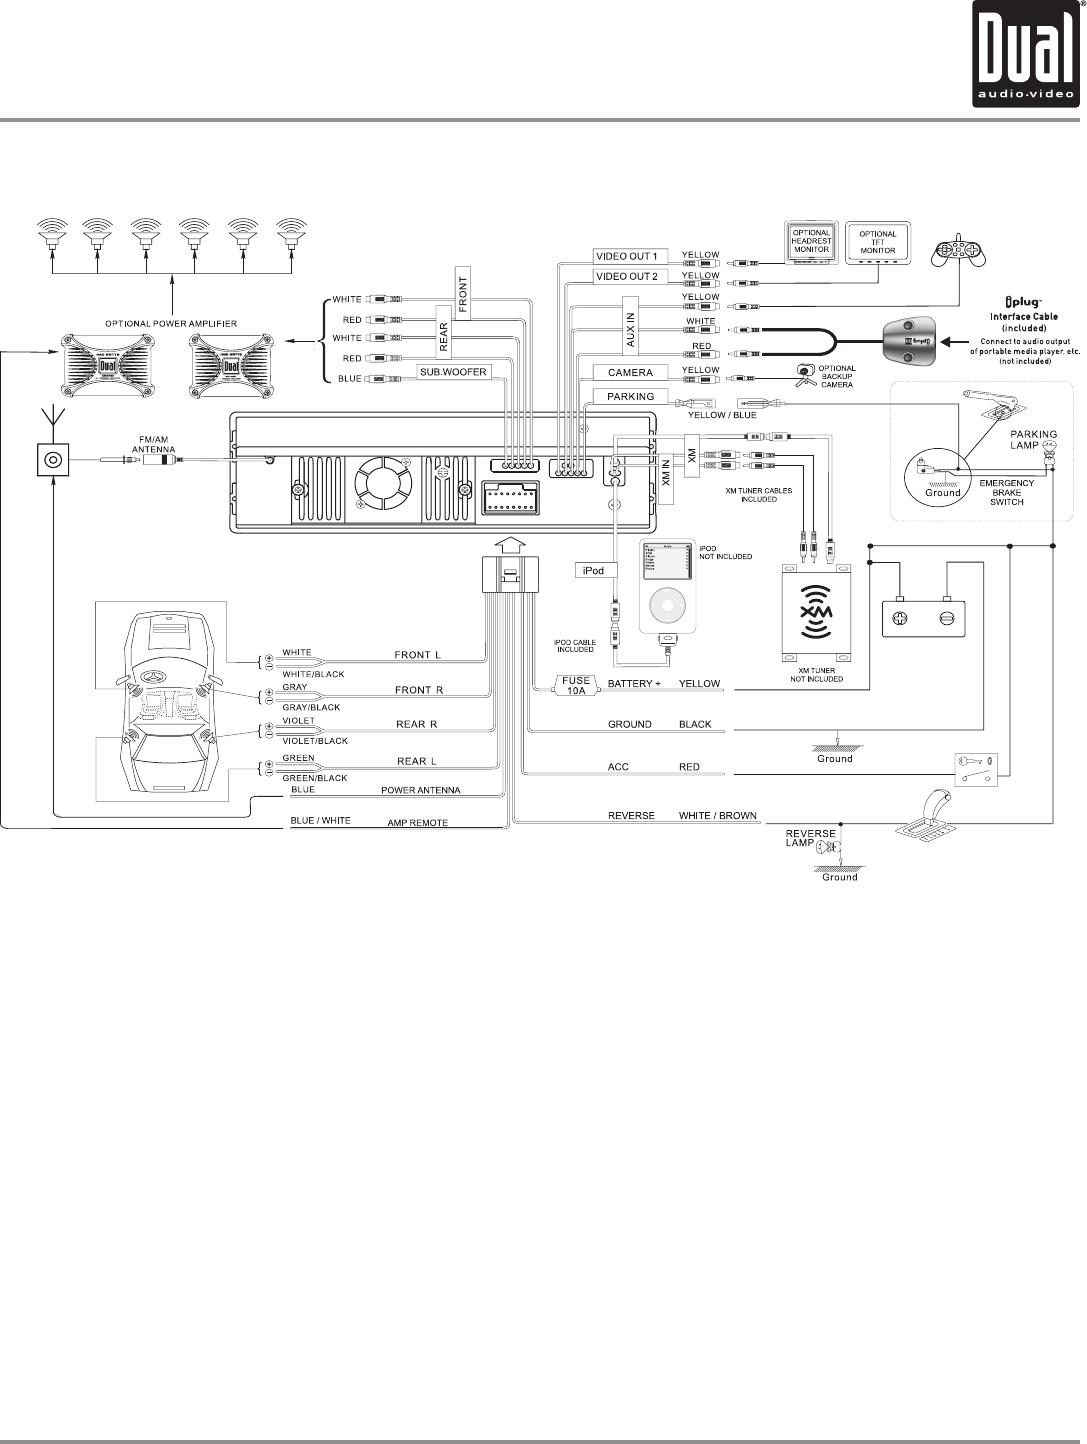 Dual Car Radio Wiring Diagram